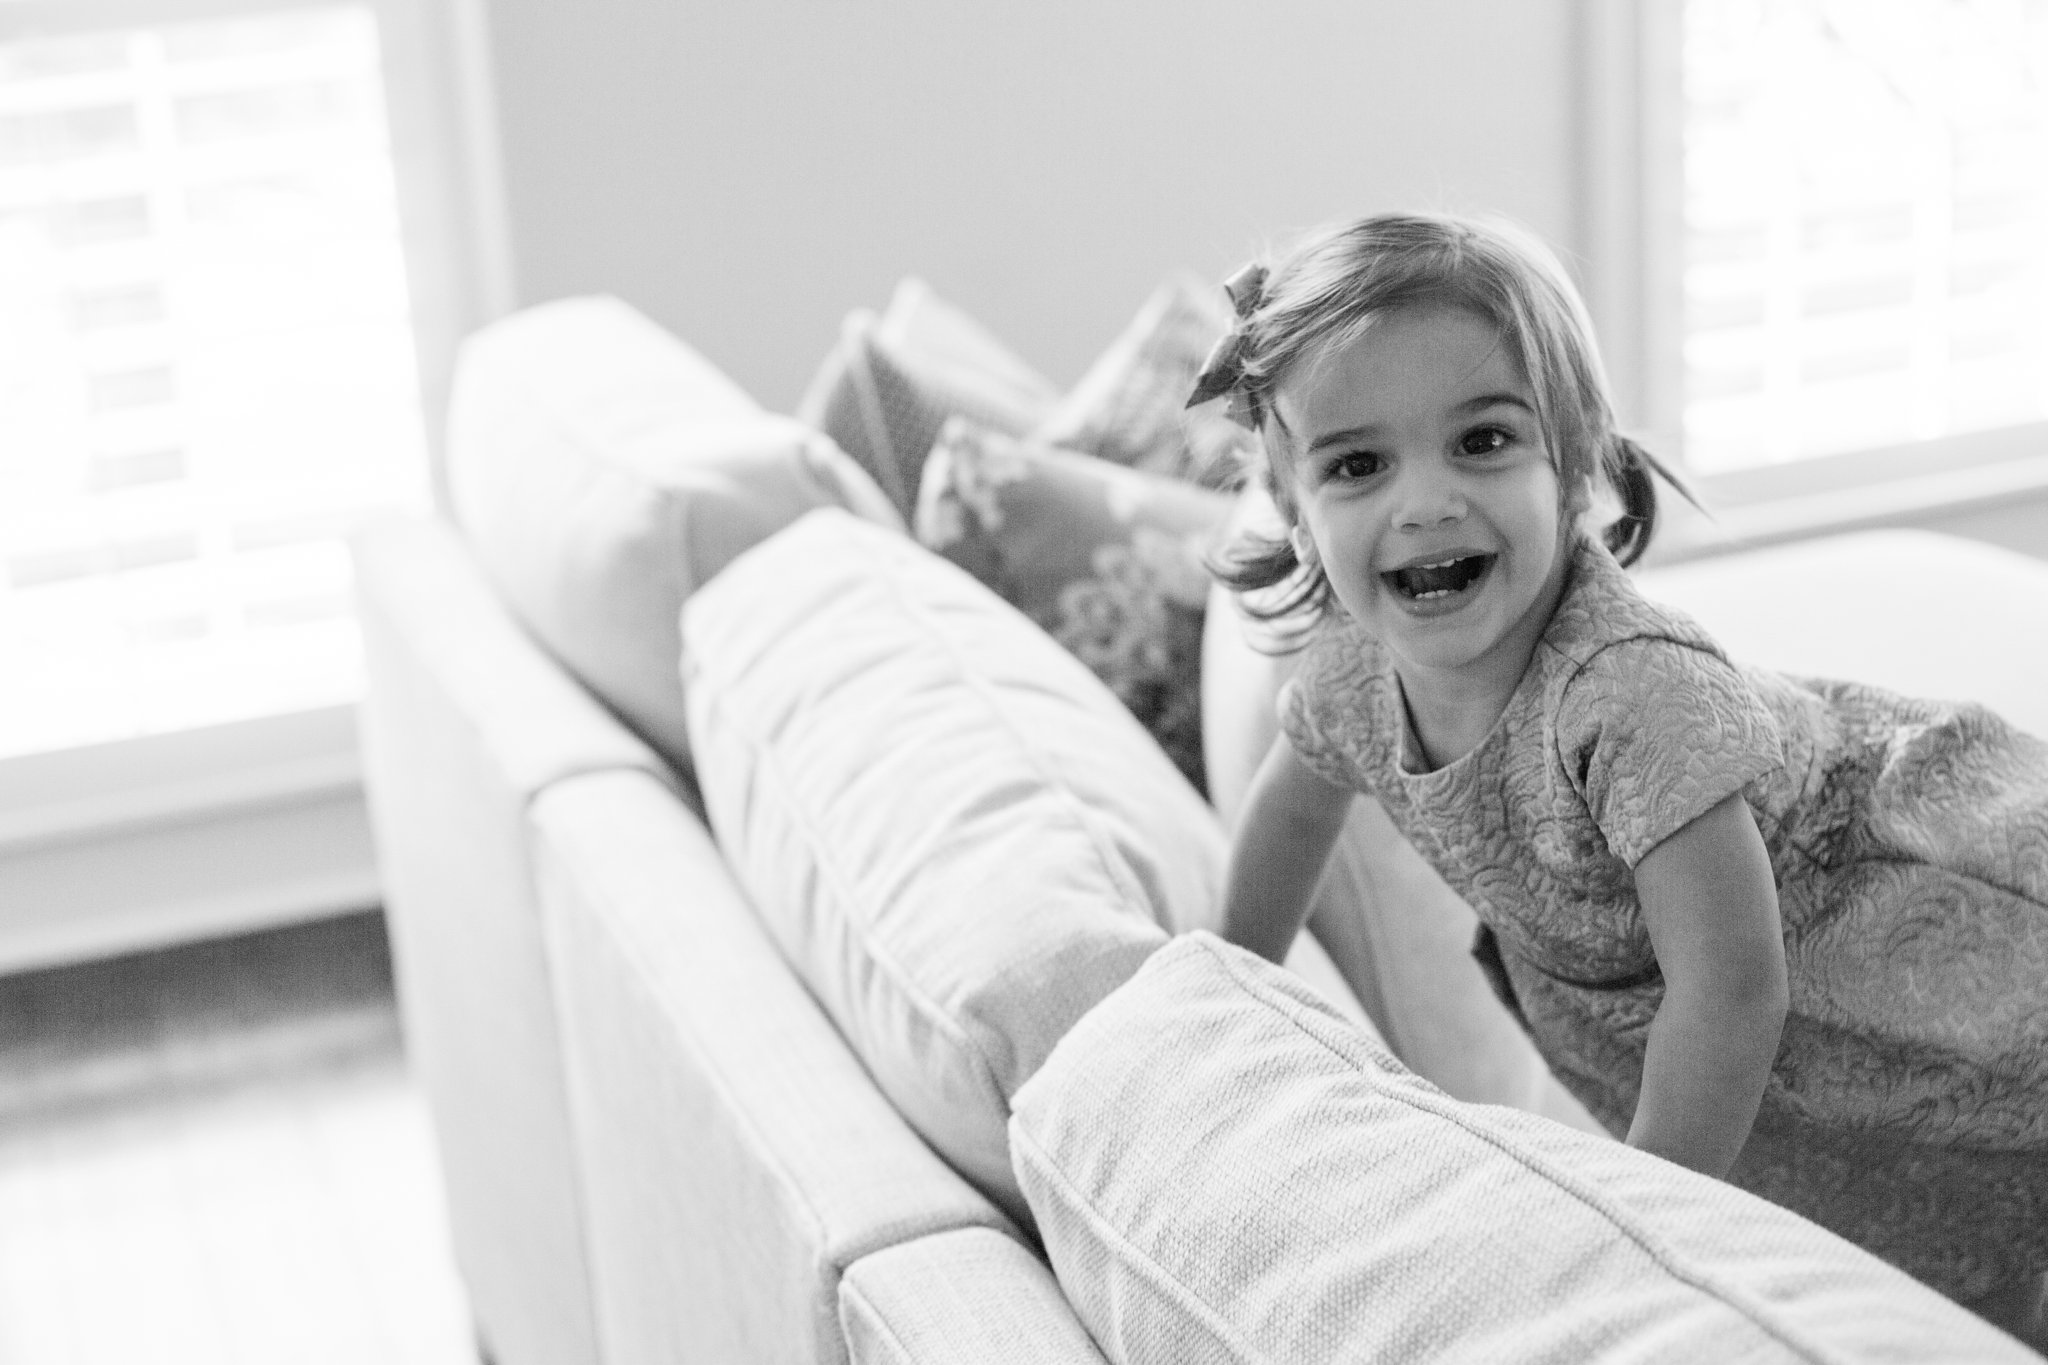 tallahassee family photographer shannon griffin photography_0011.jpg